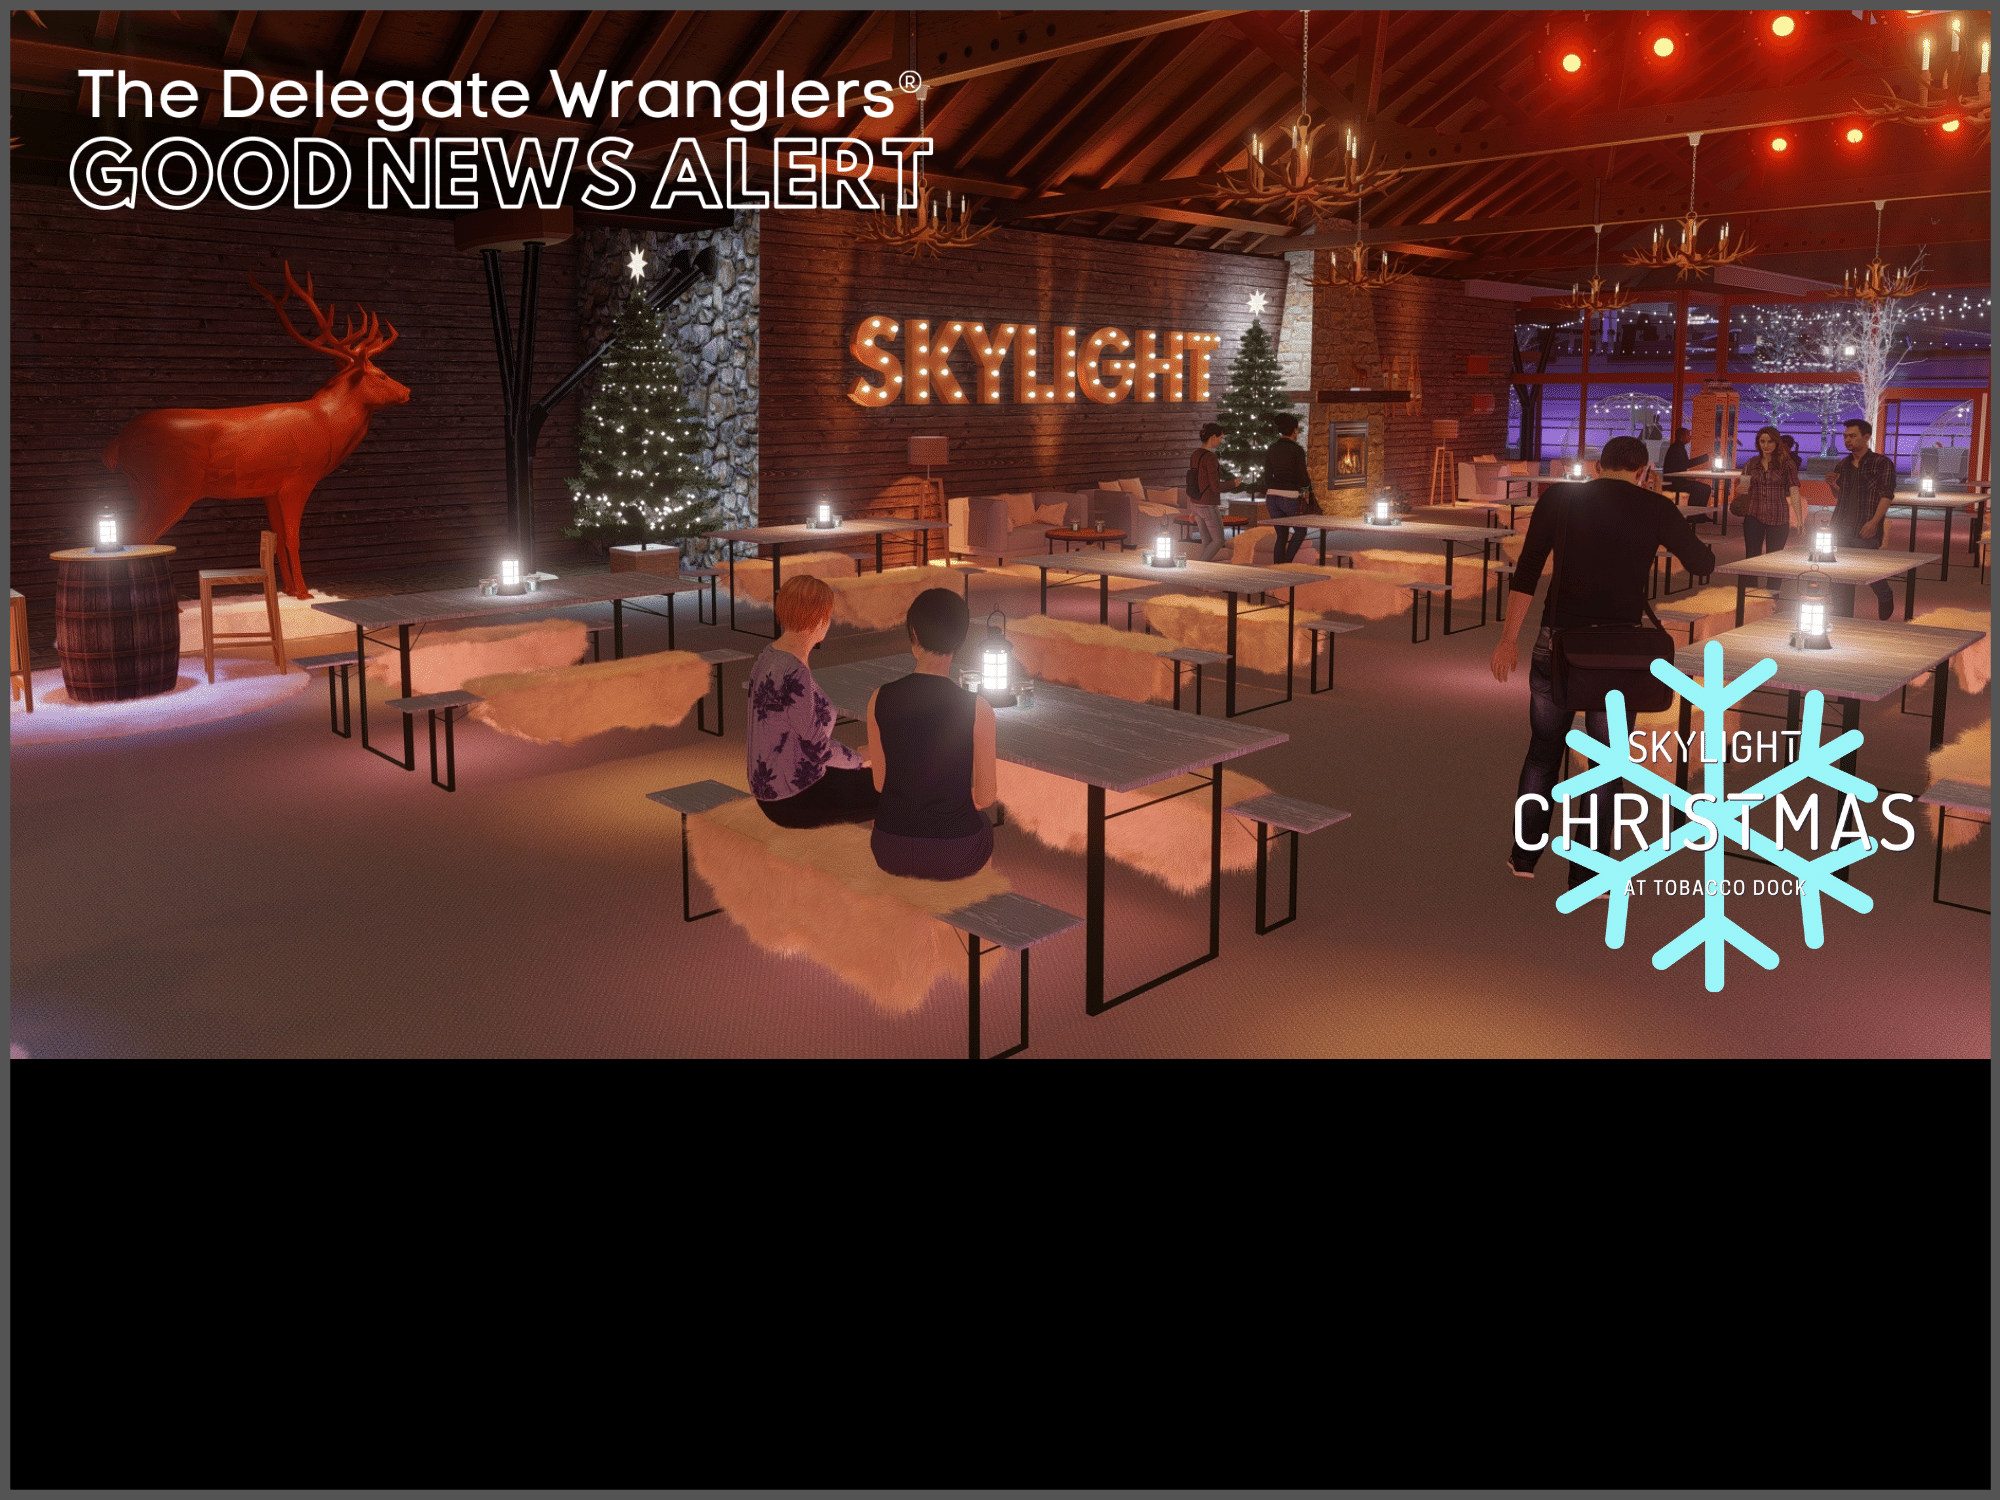 Skylight Christmas At Tobacco Dock London